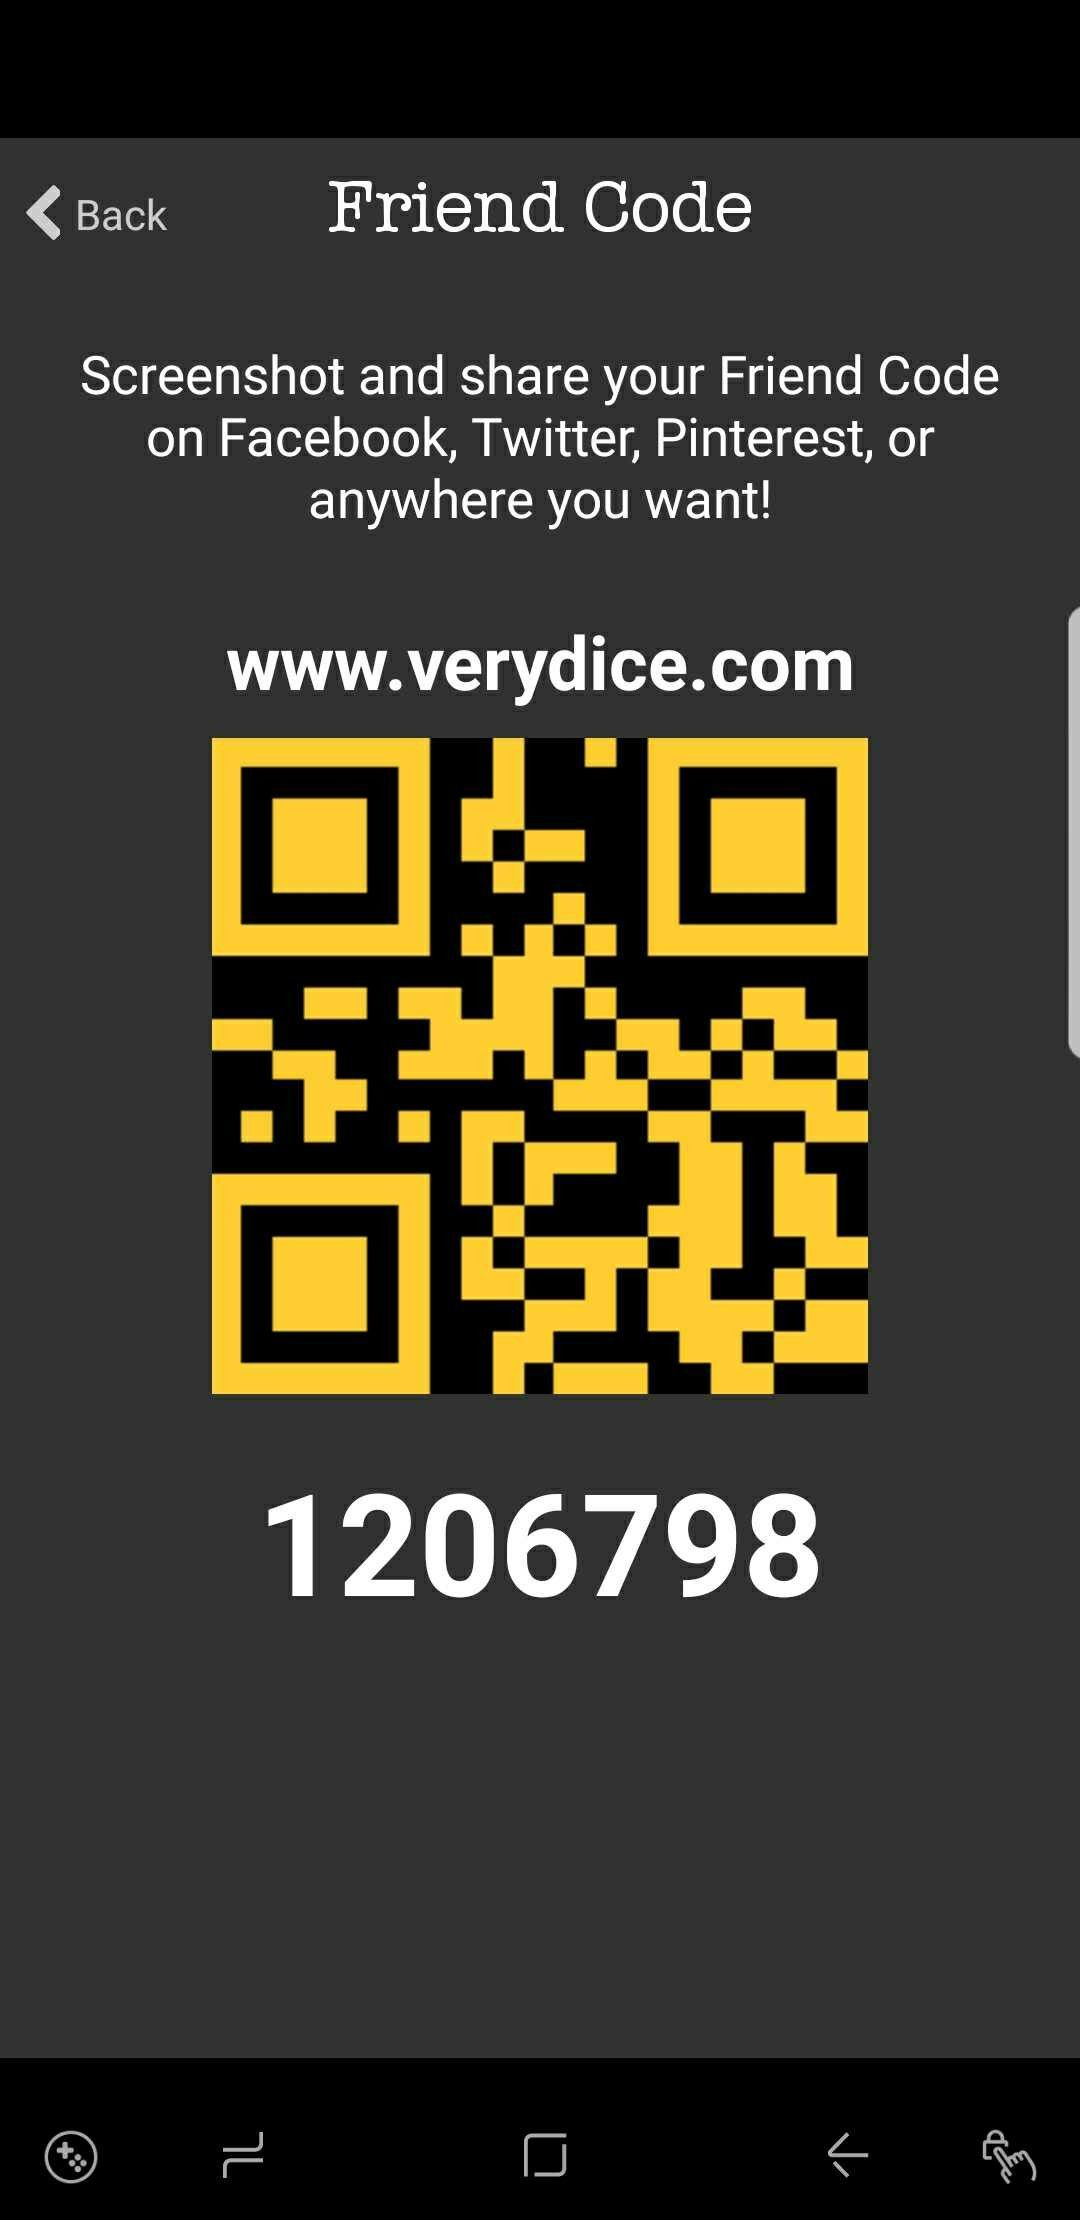 Use my Verydice code to earn unlimited rolls for one hour